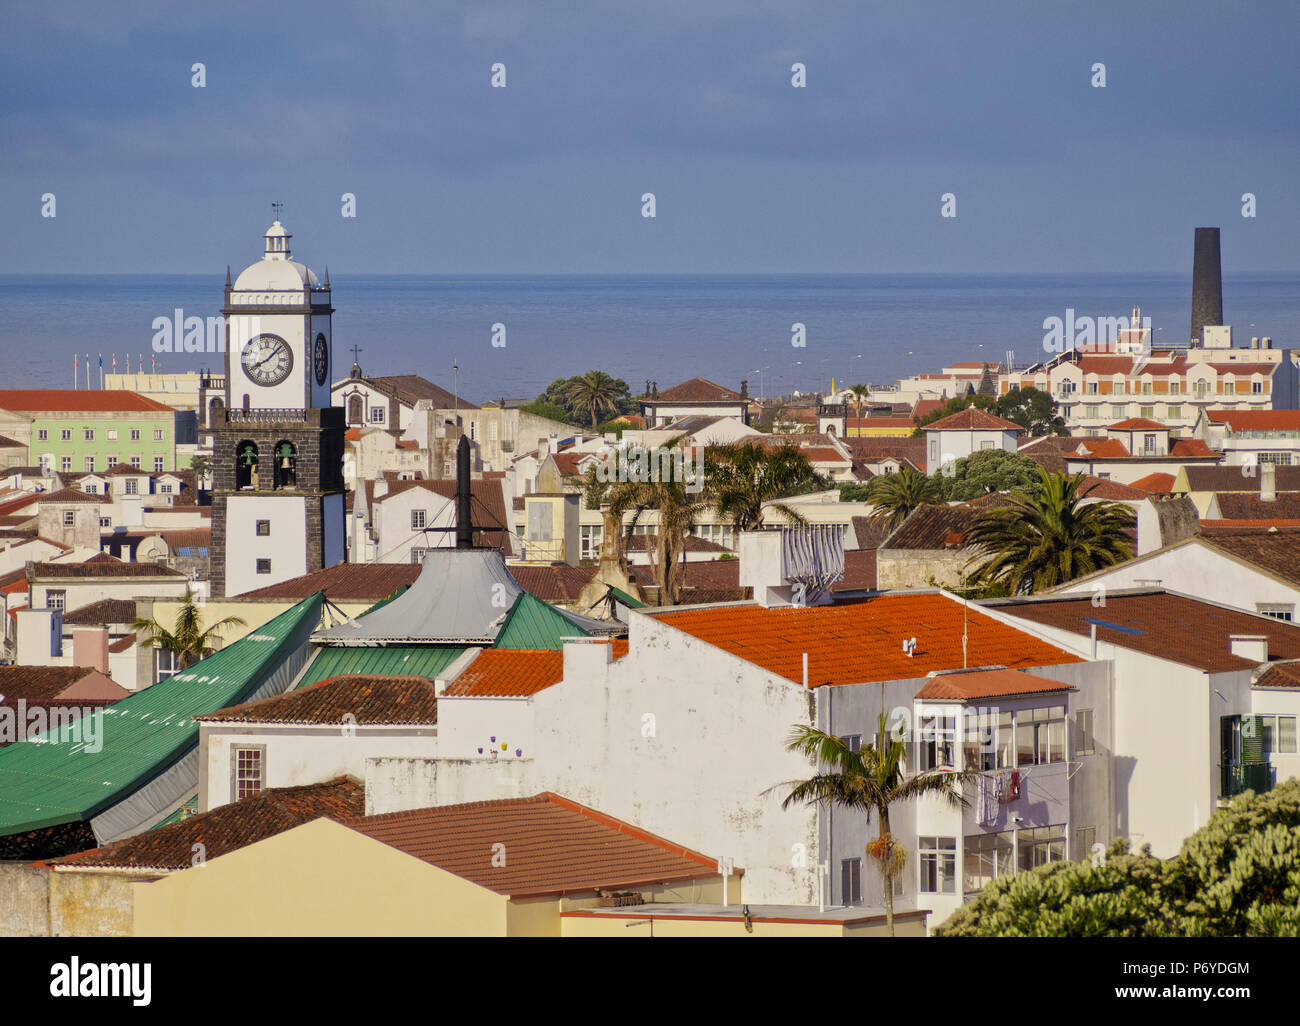 Portugal, Azores, Sao Miguel, Ponta Delgada, Elevated view of the Old Town. - Stock Image